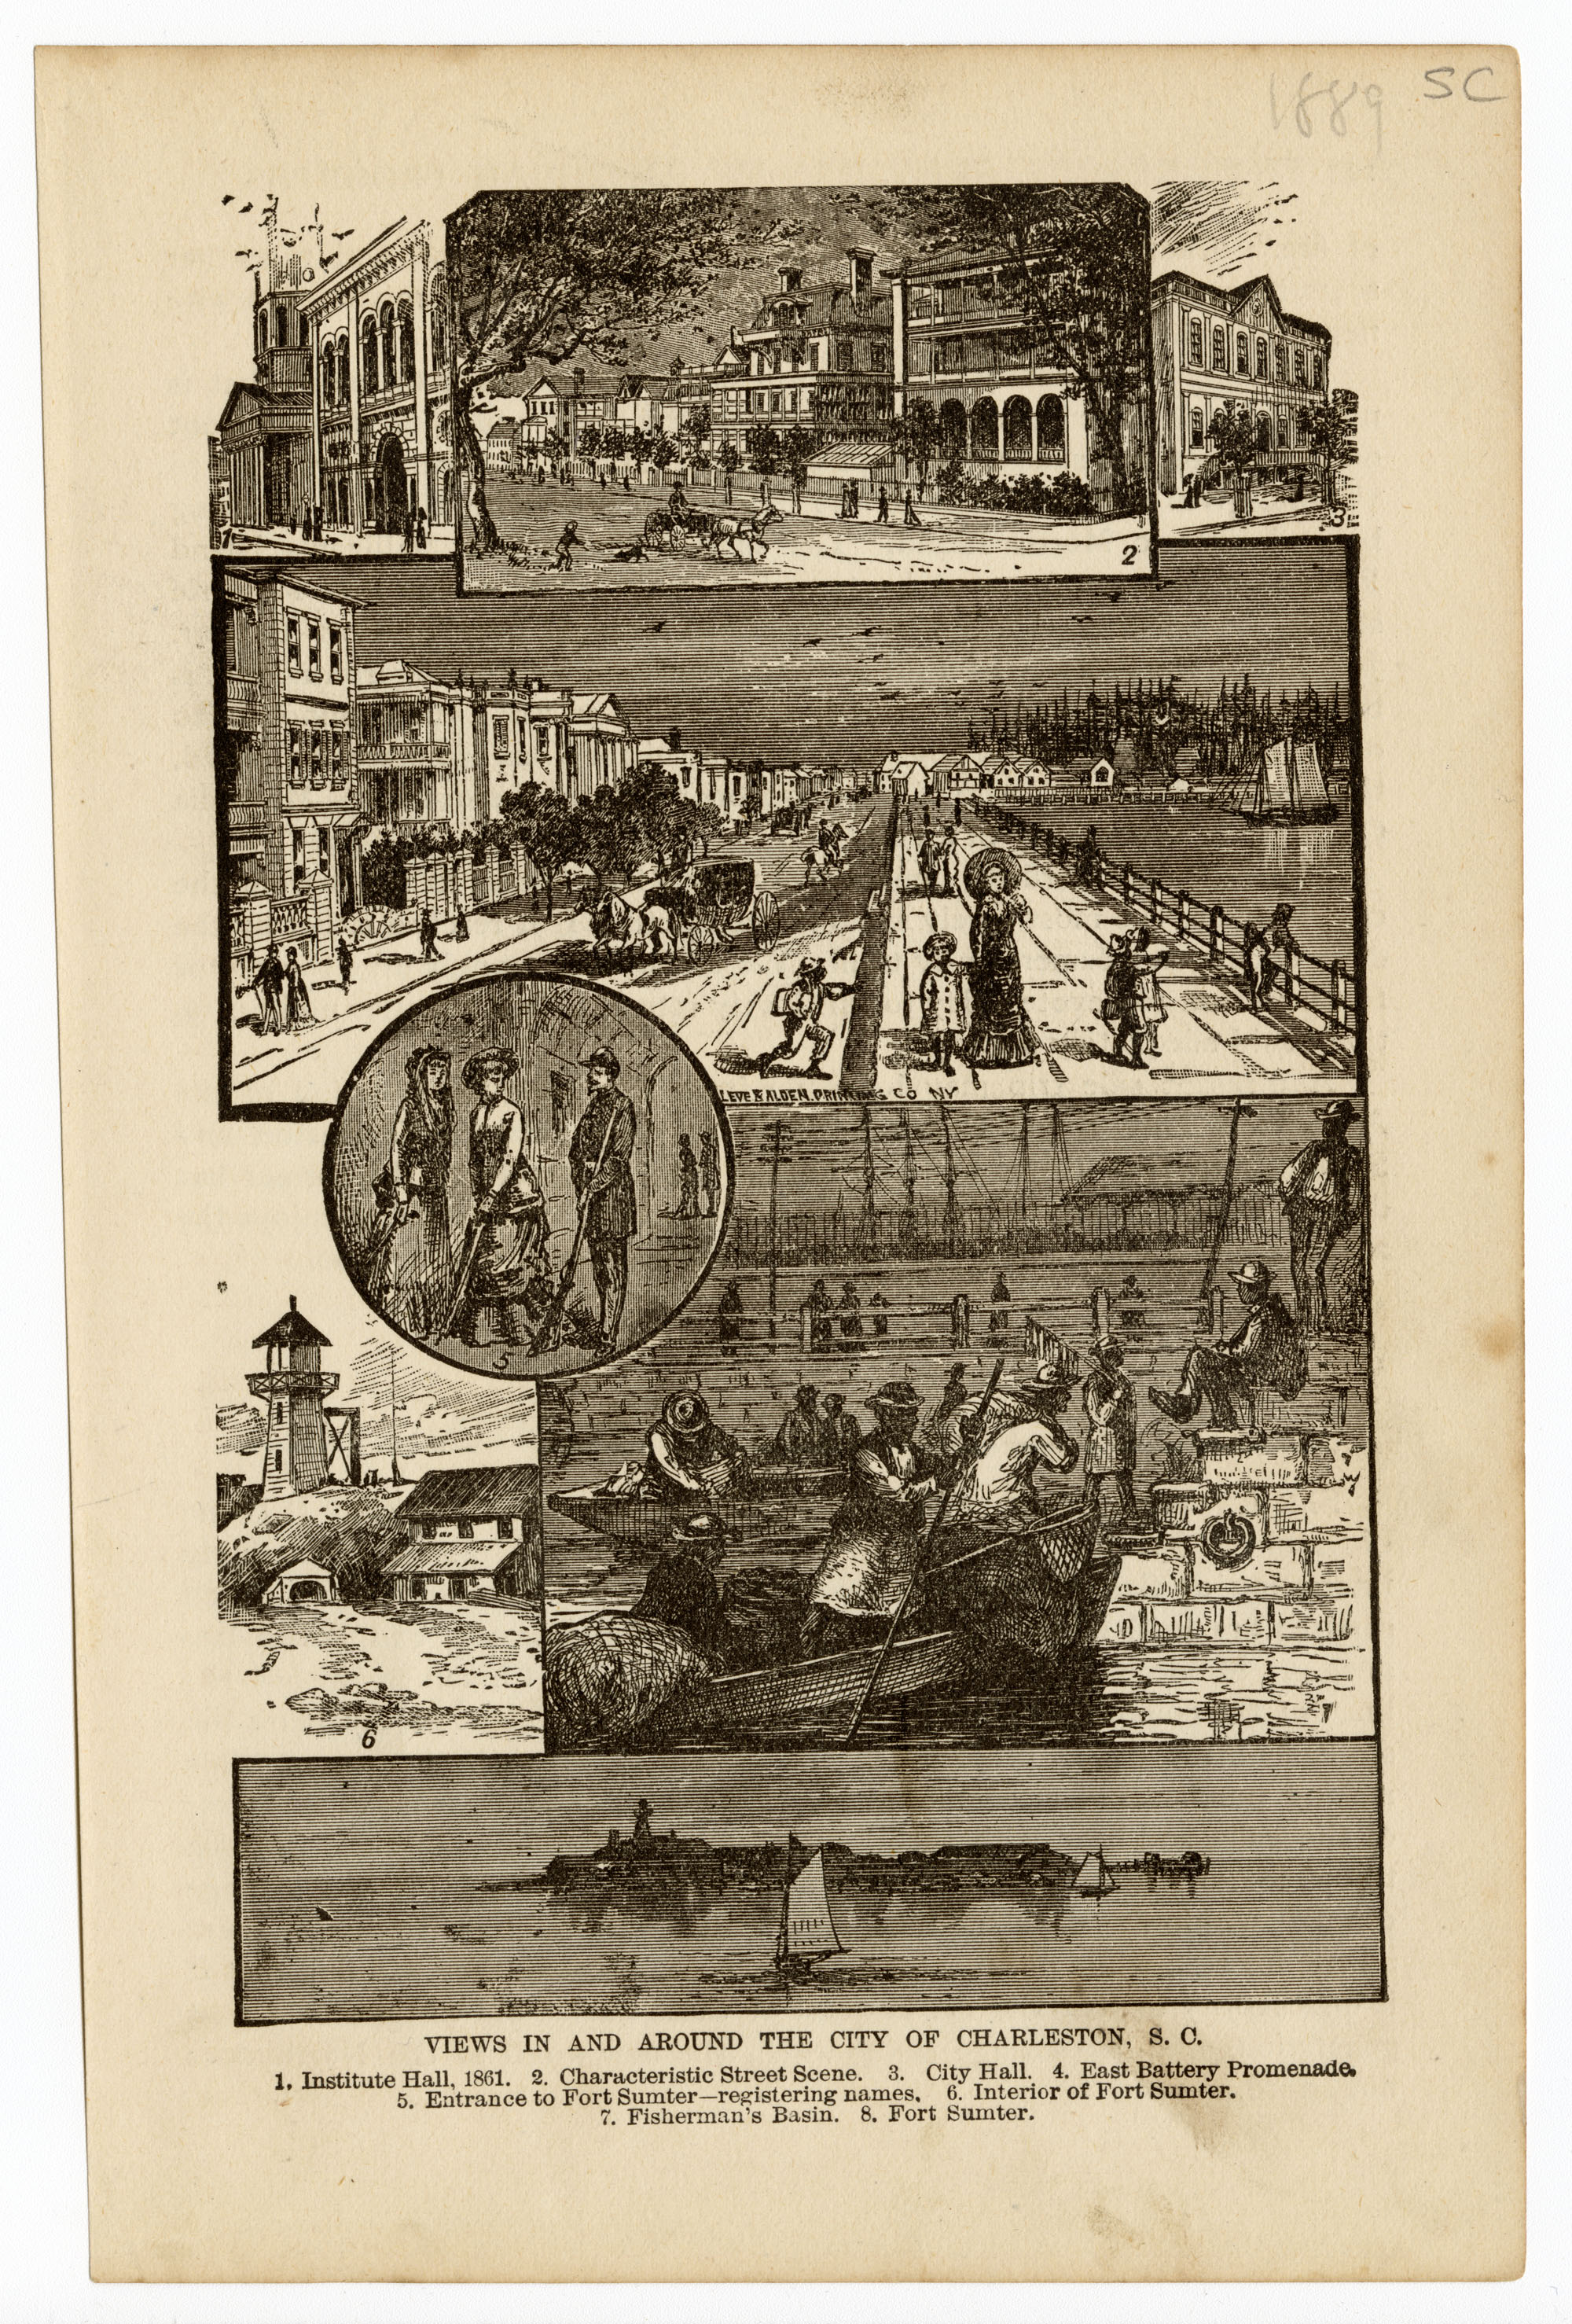 Views in and around the city of Charleston from Picturesque Sketches of American Progress